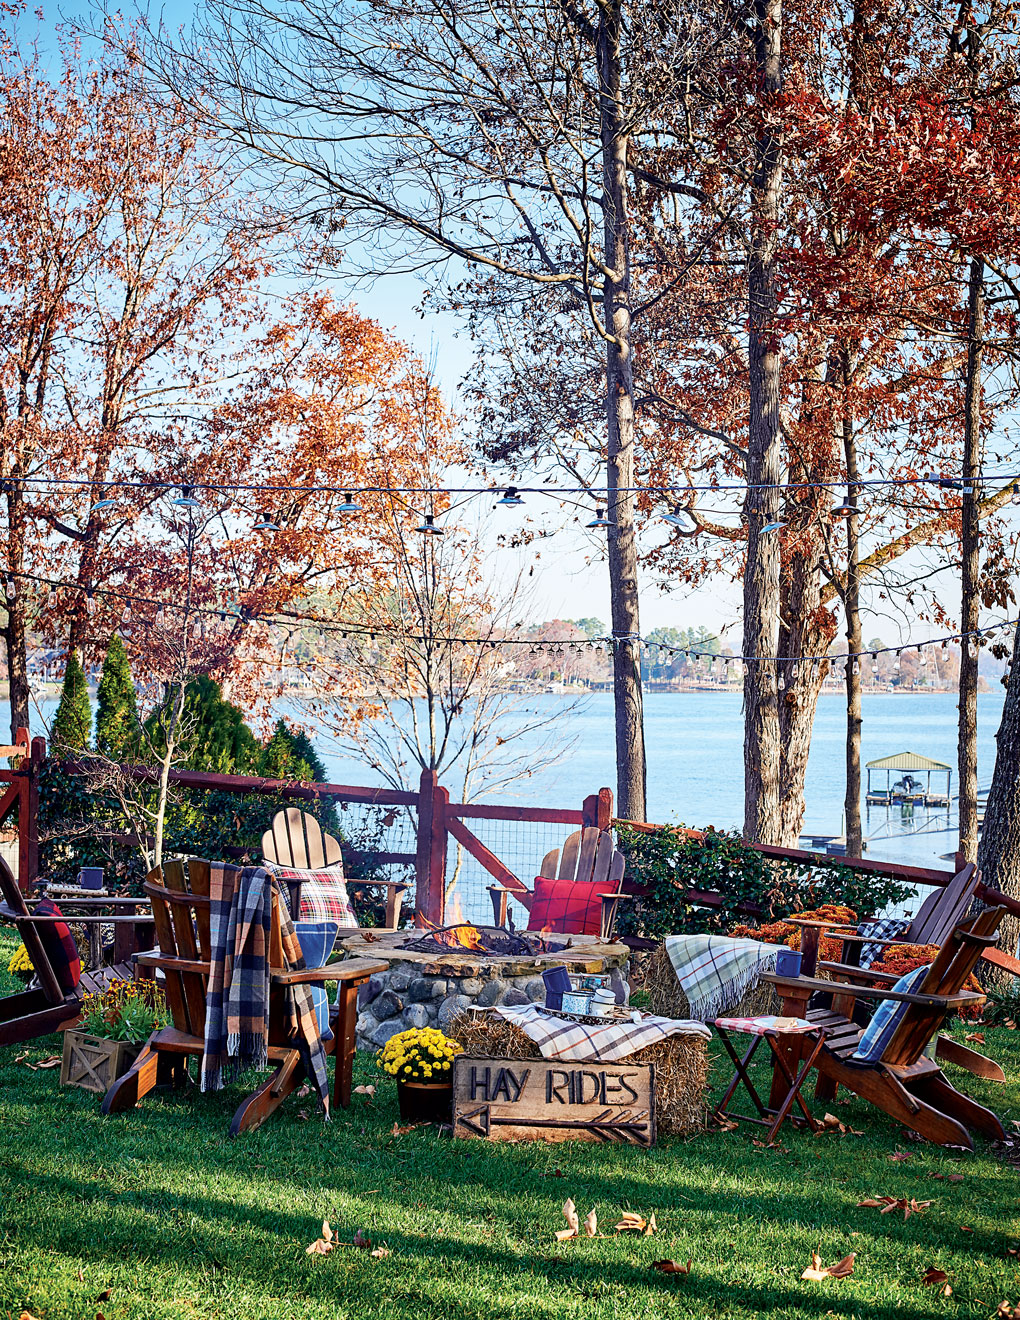 Adirondack chairs encircle a fire pit next to the lake, surrounded by trees and string lighting.